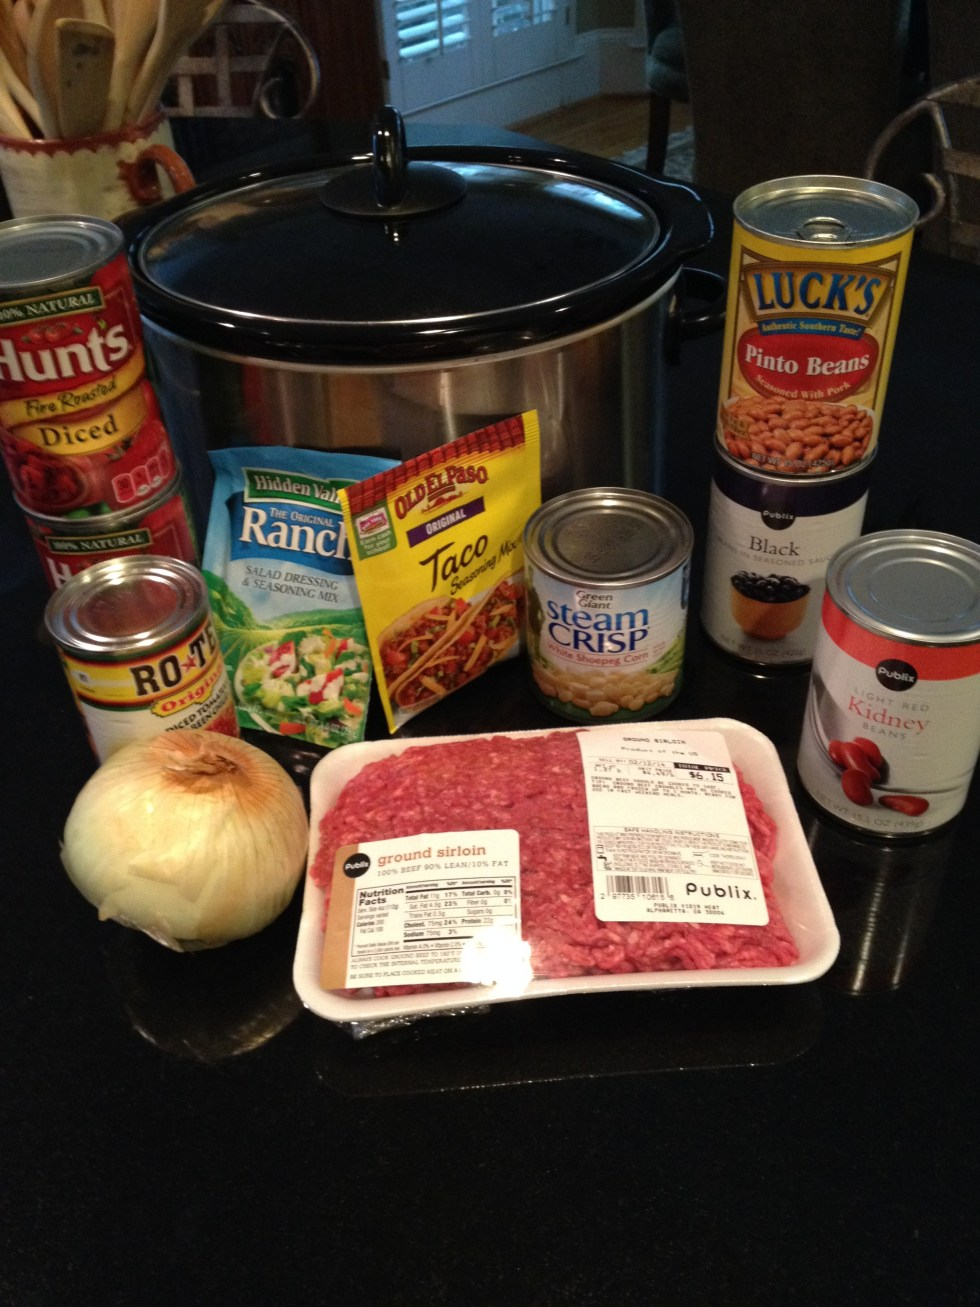 Items for Taco Soup